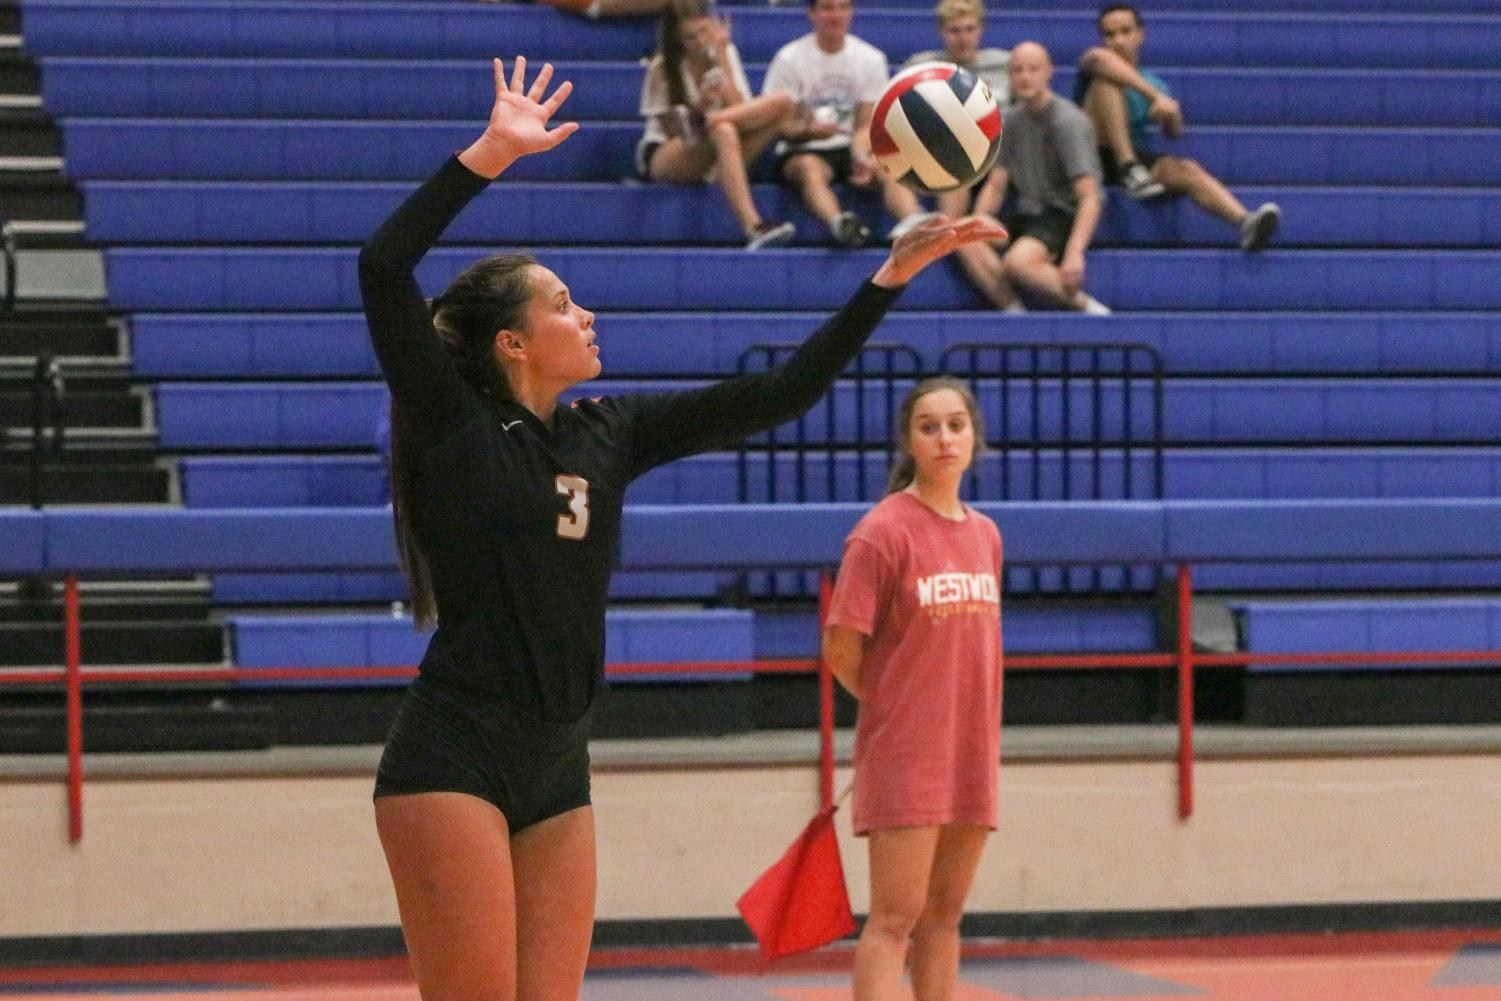 Throwing+the+ball+up%2C+Abby+Gregorczyk+%2721+serves+the+ball.+Despite+her+serve%2C+Westwood+lost+the+point.+%22Coach+Neslon+would+tell+us+where+to+serve+and+she+would+give+a+sign%2C+like+a+hand+signal%2C%22+Gregorczyk+%2721+said.